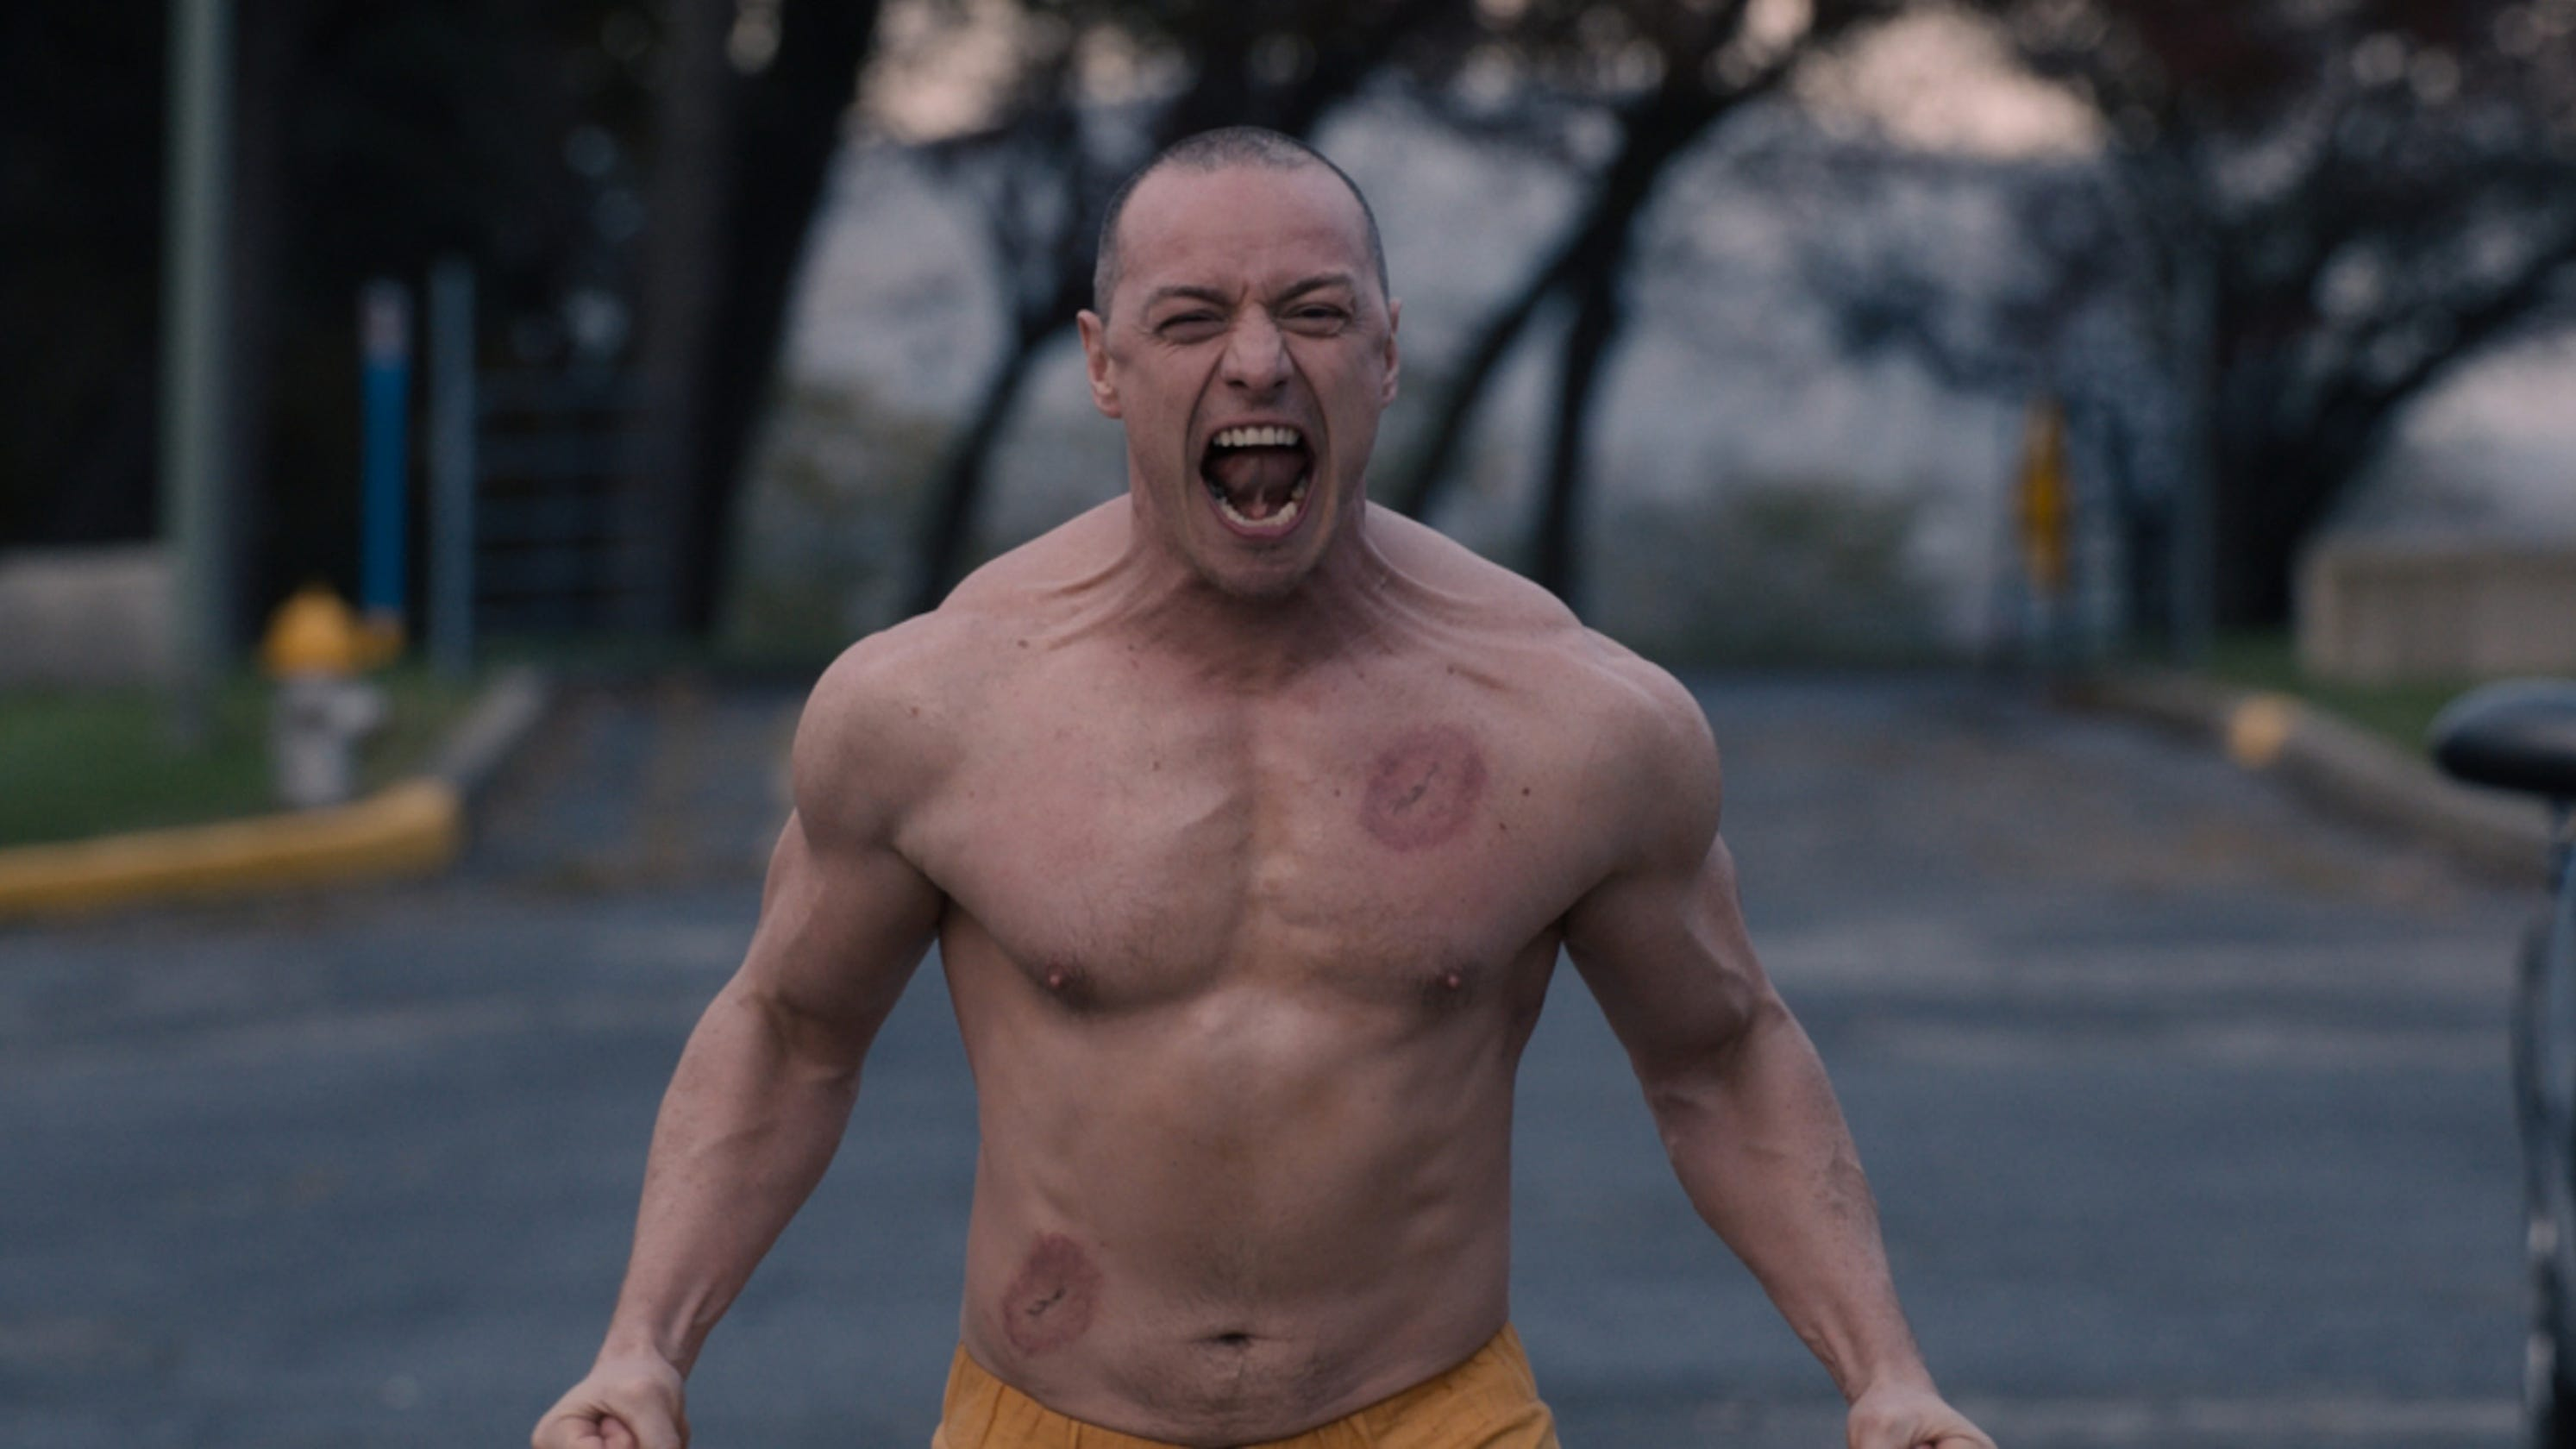 Glass': How James McAvoy got into Beast mode for a muscular